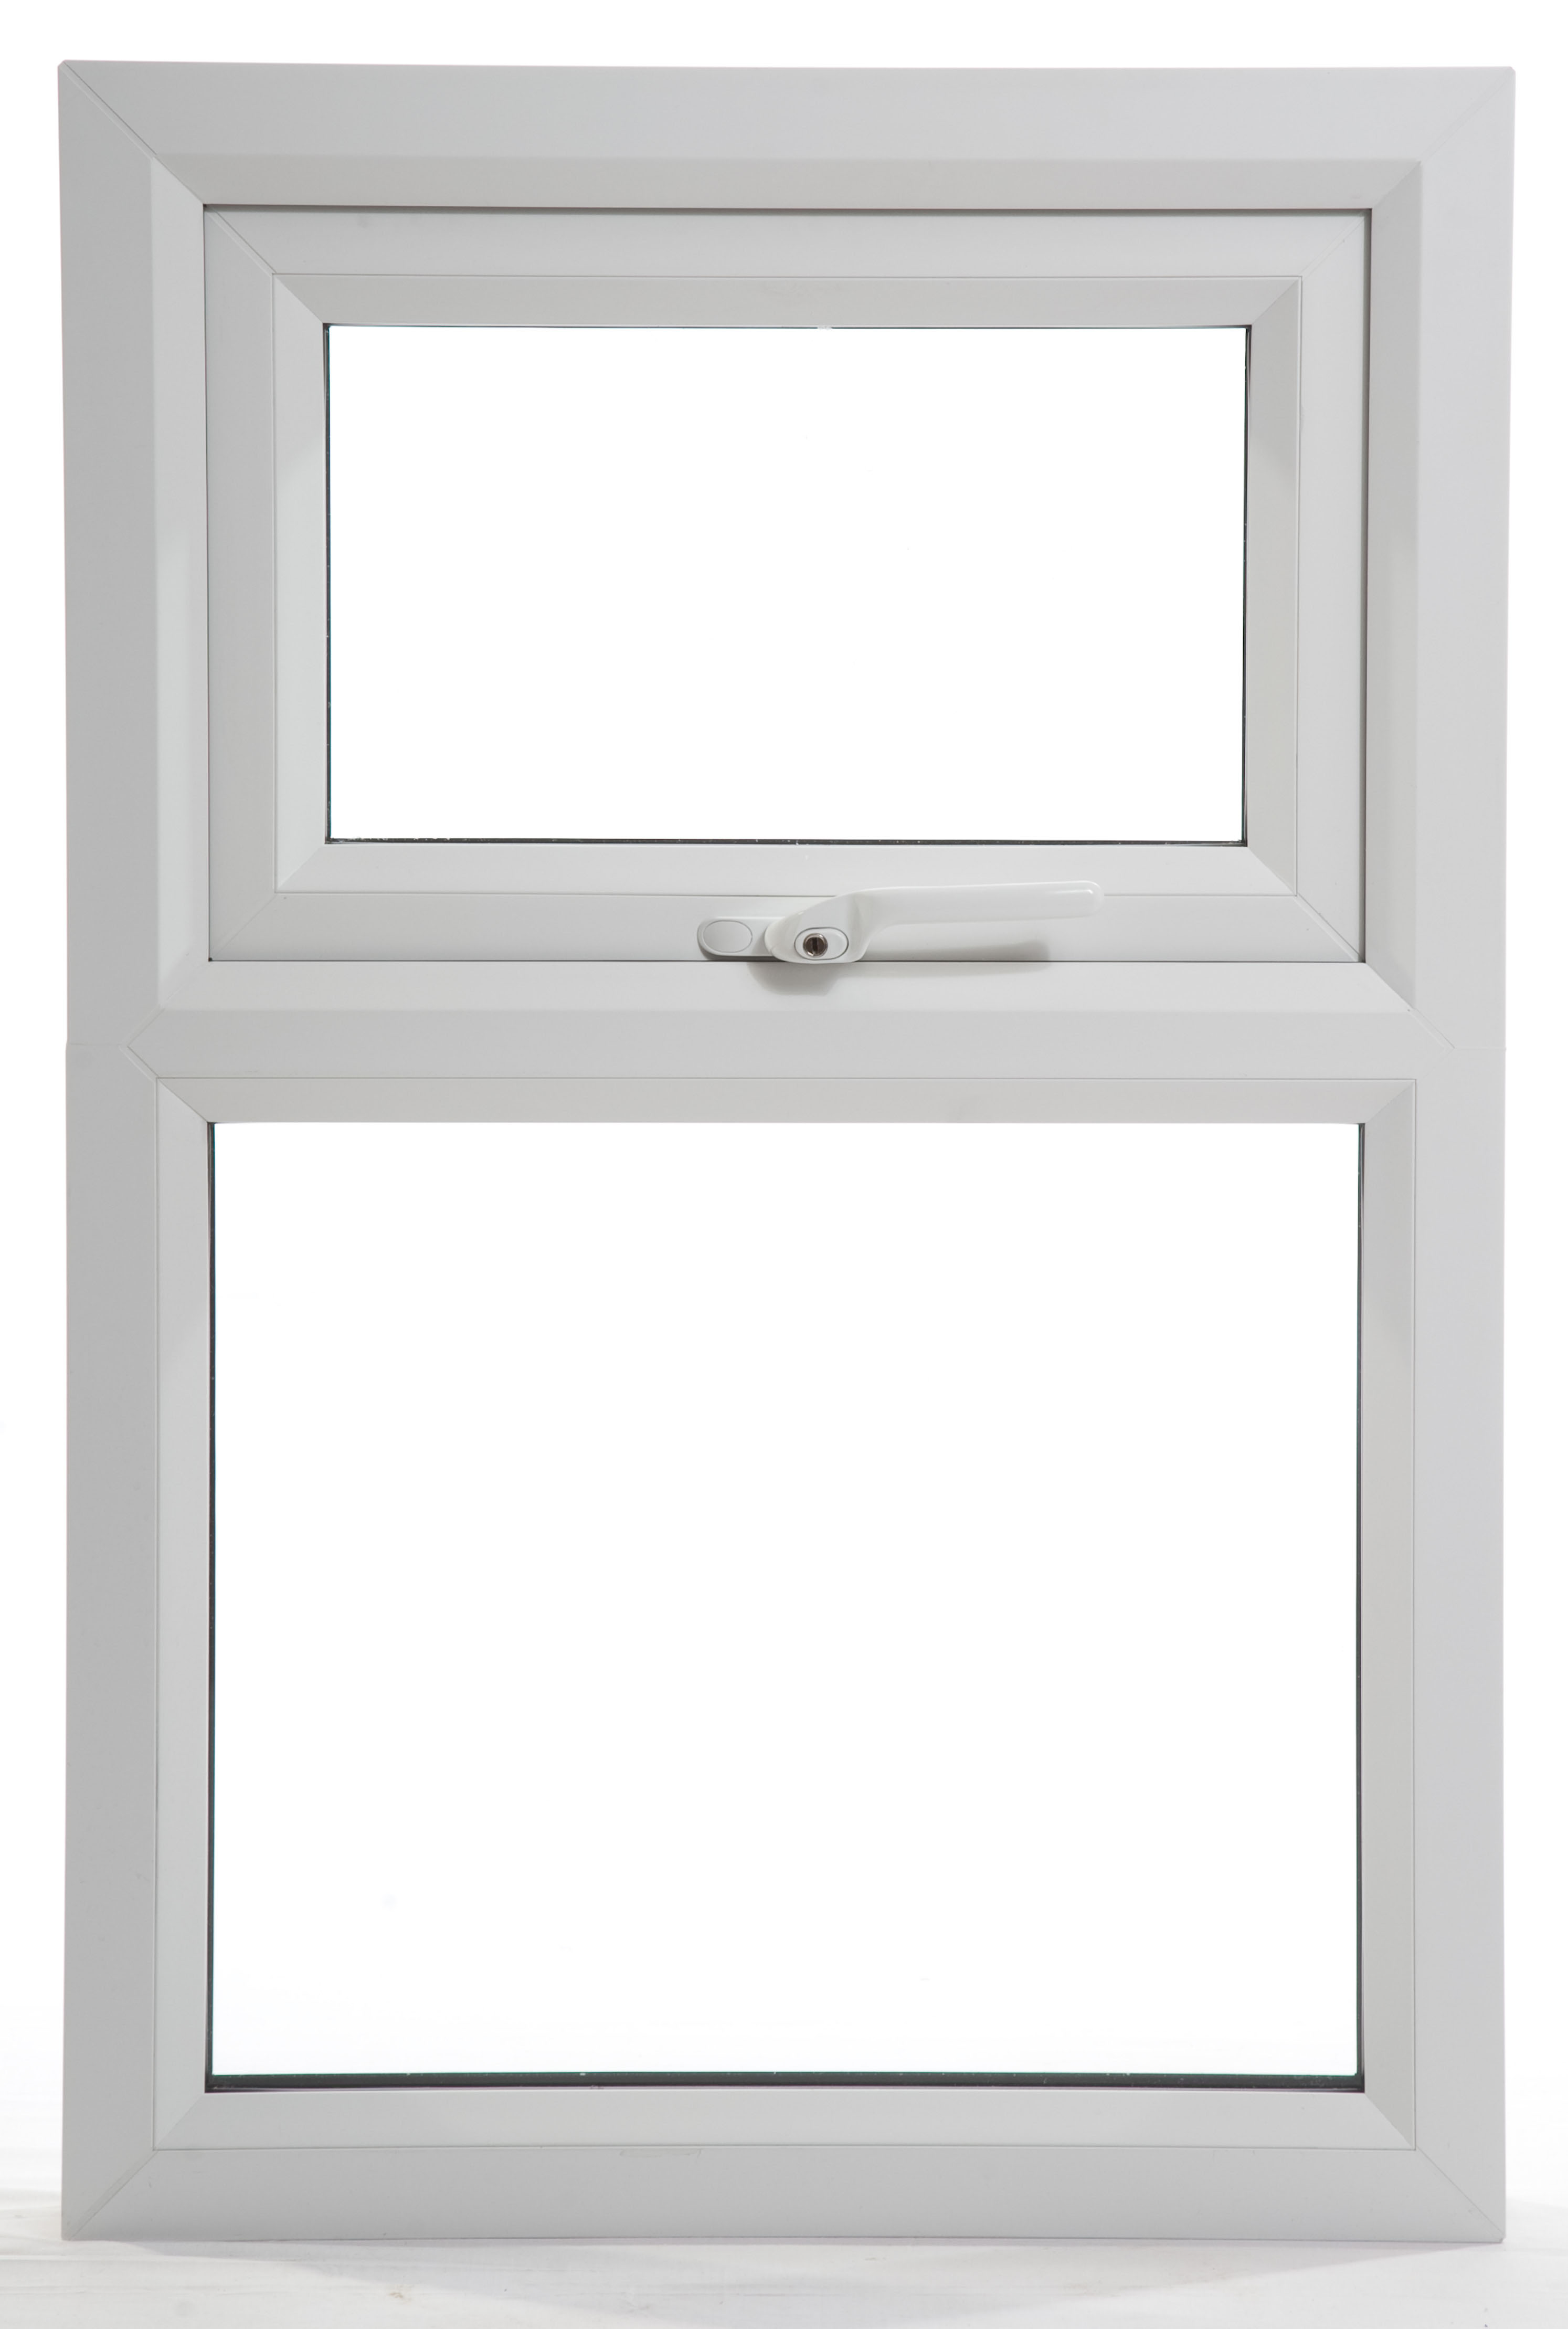 White window frame - Slimsash